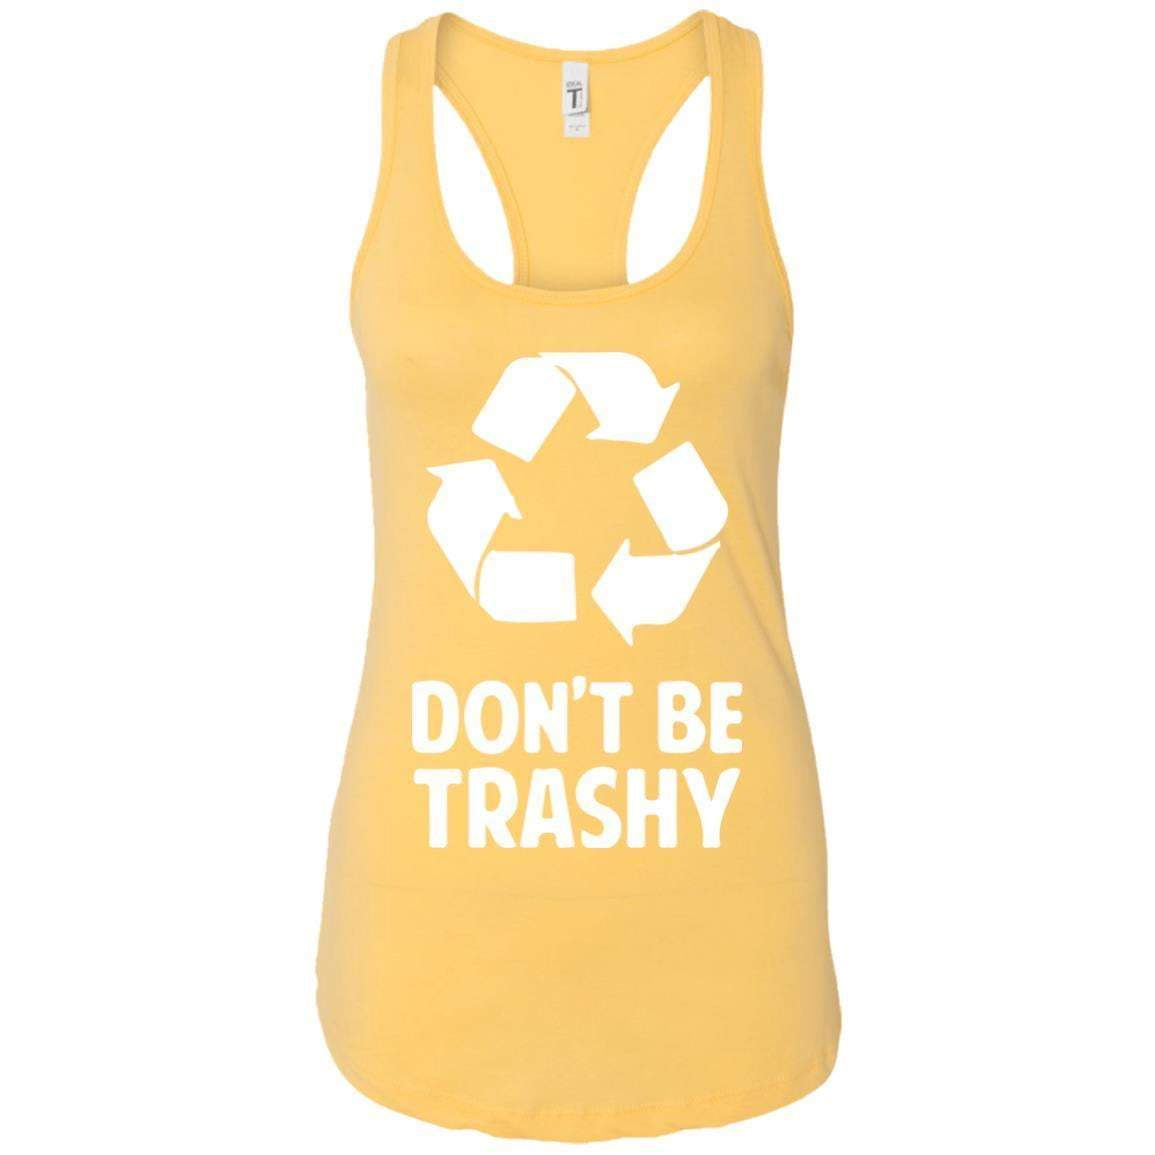 Don't Be Trashy Women's Racerback Tank